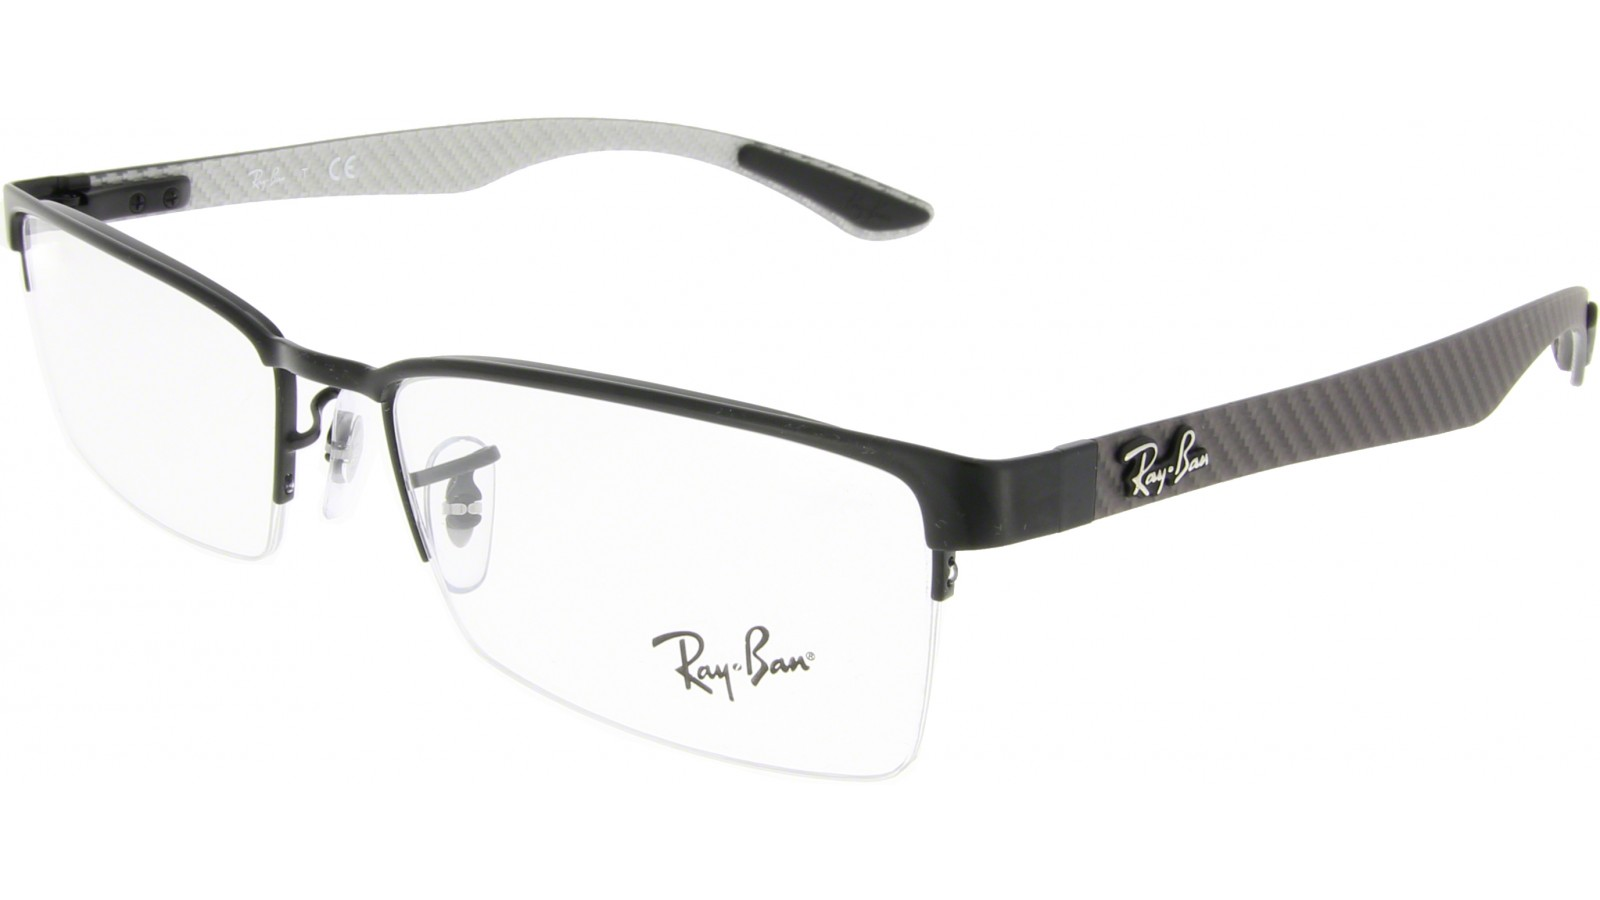 Ray Ban Brille RX 8412 2503 54/145